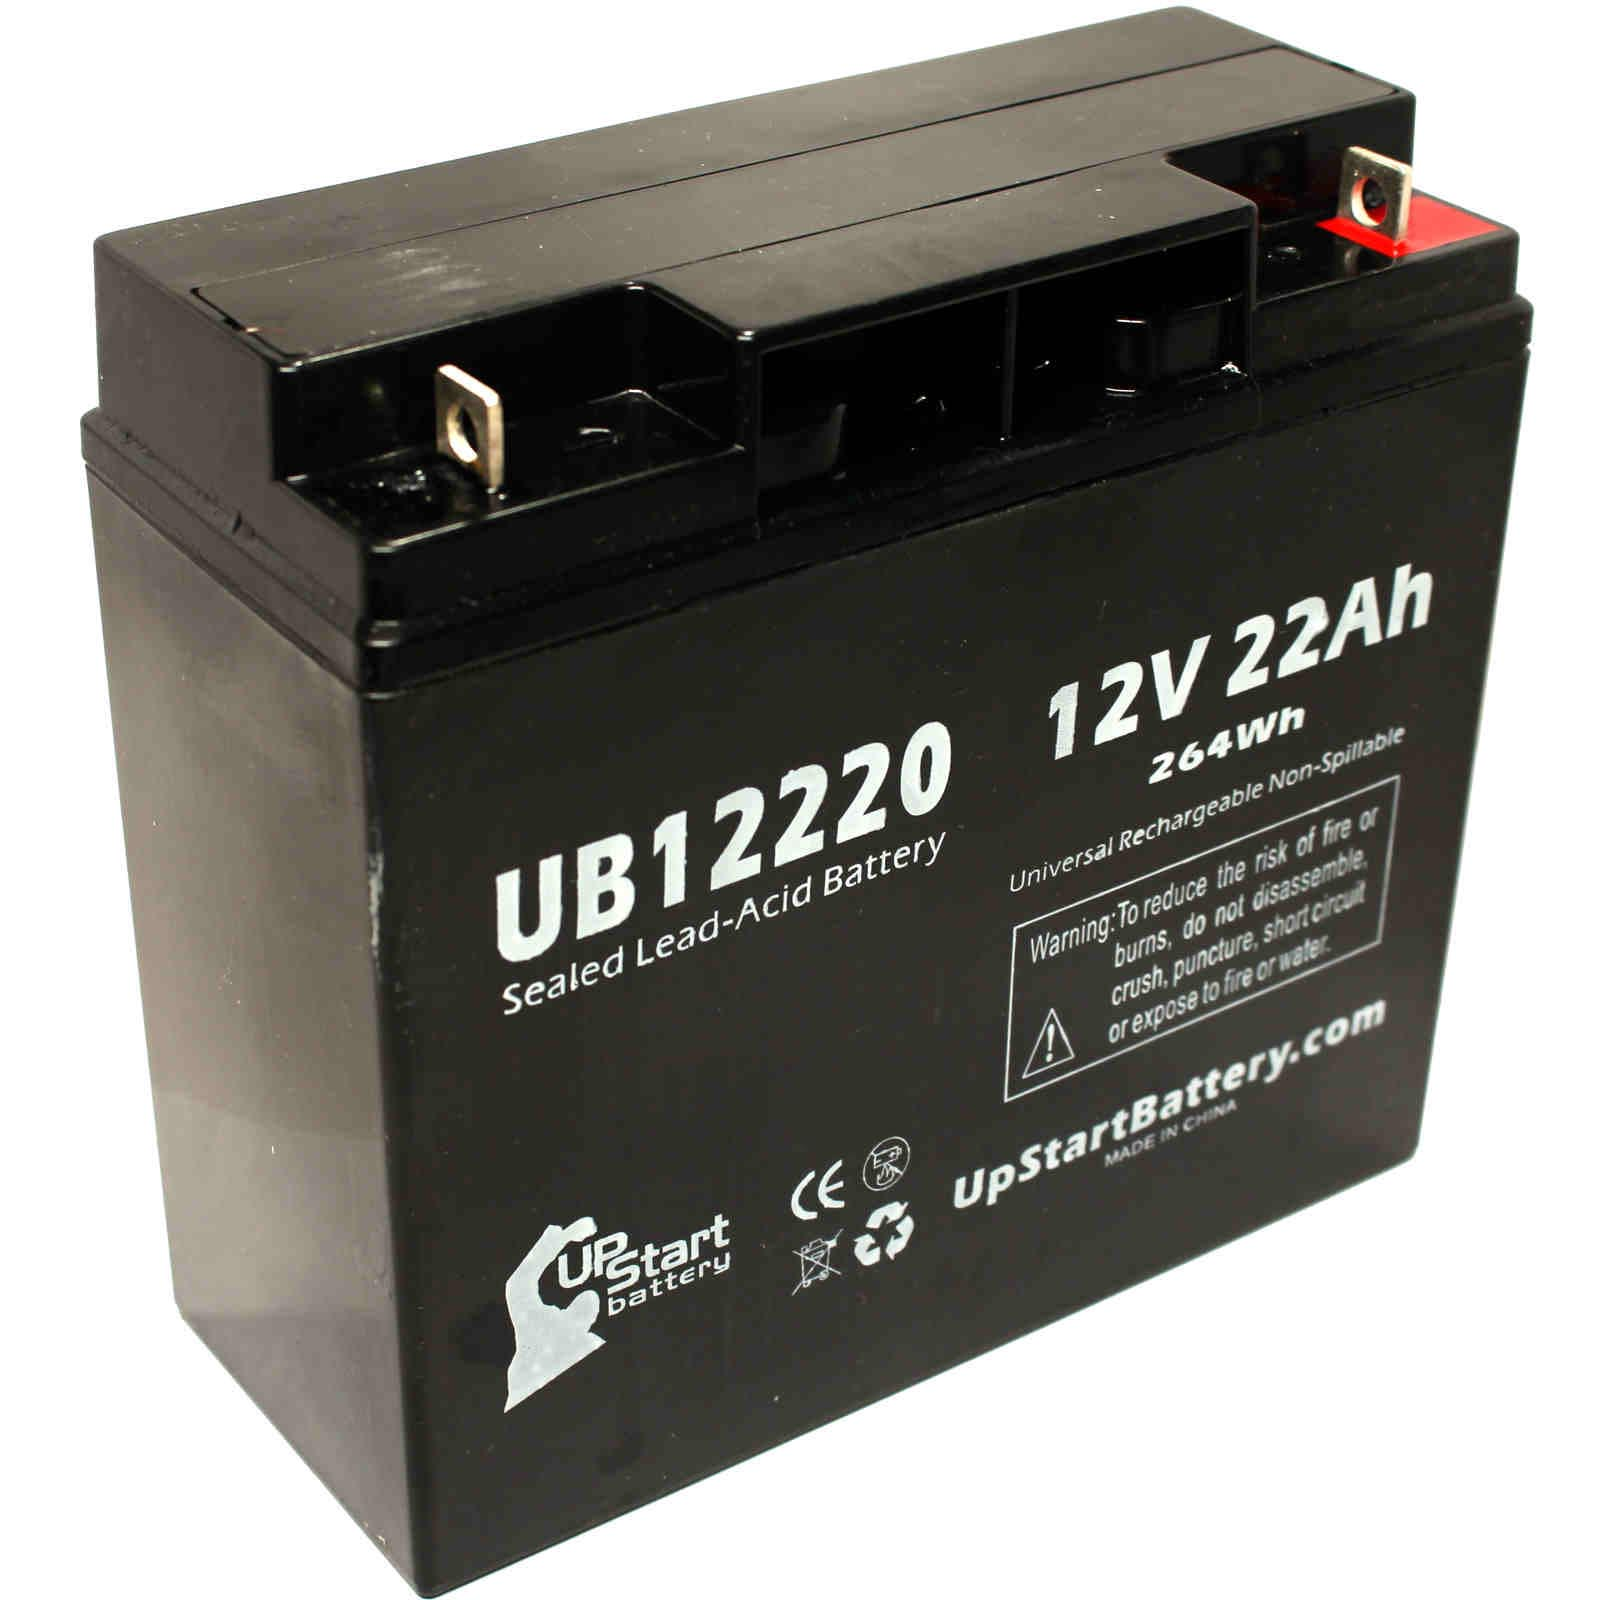 UpStart Battery ACCESS BATTERY SLA12180 Battery - Replacement UB12220 Universal Sealed Lead Acid Battery (12V, 22Ah, 22000mAh, T4 Terminal,) at Sears.com